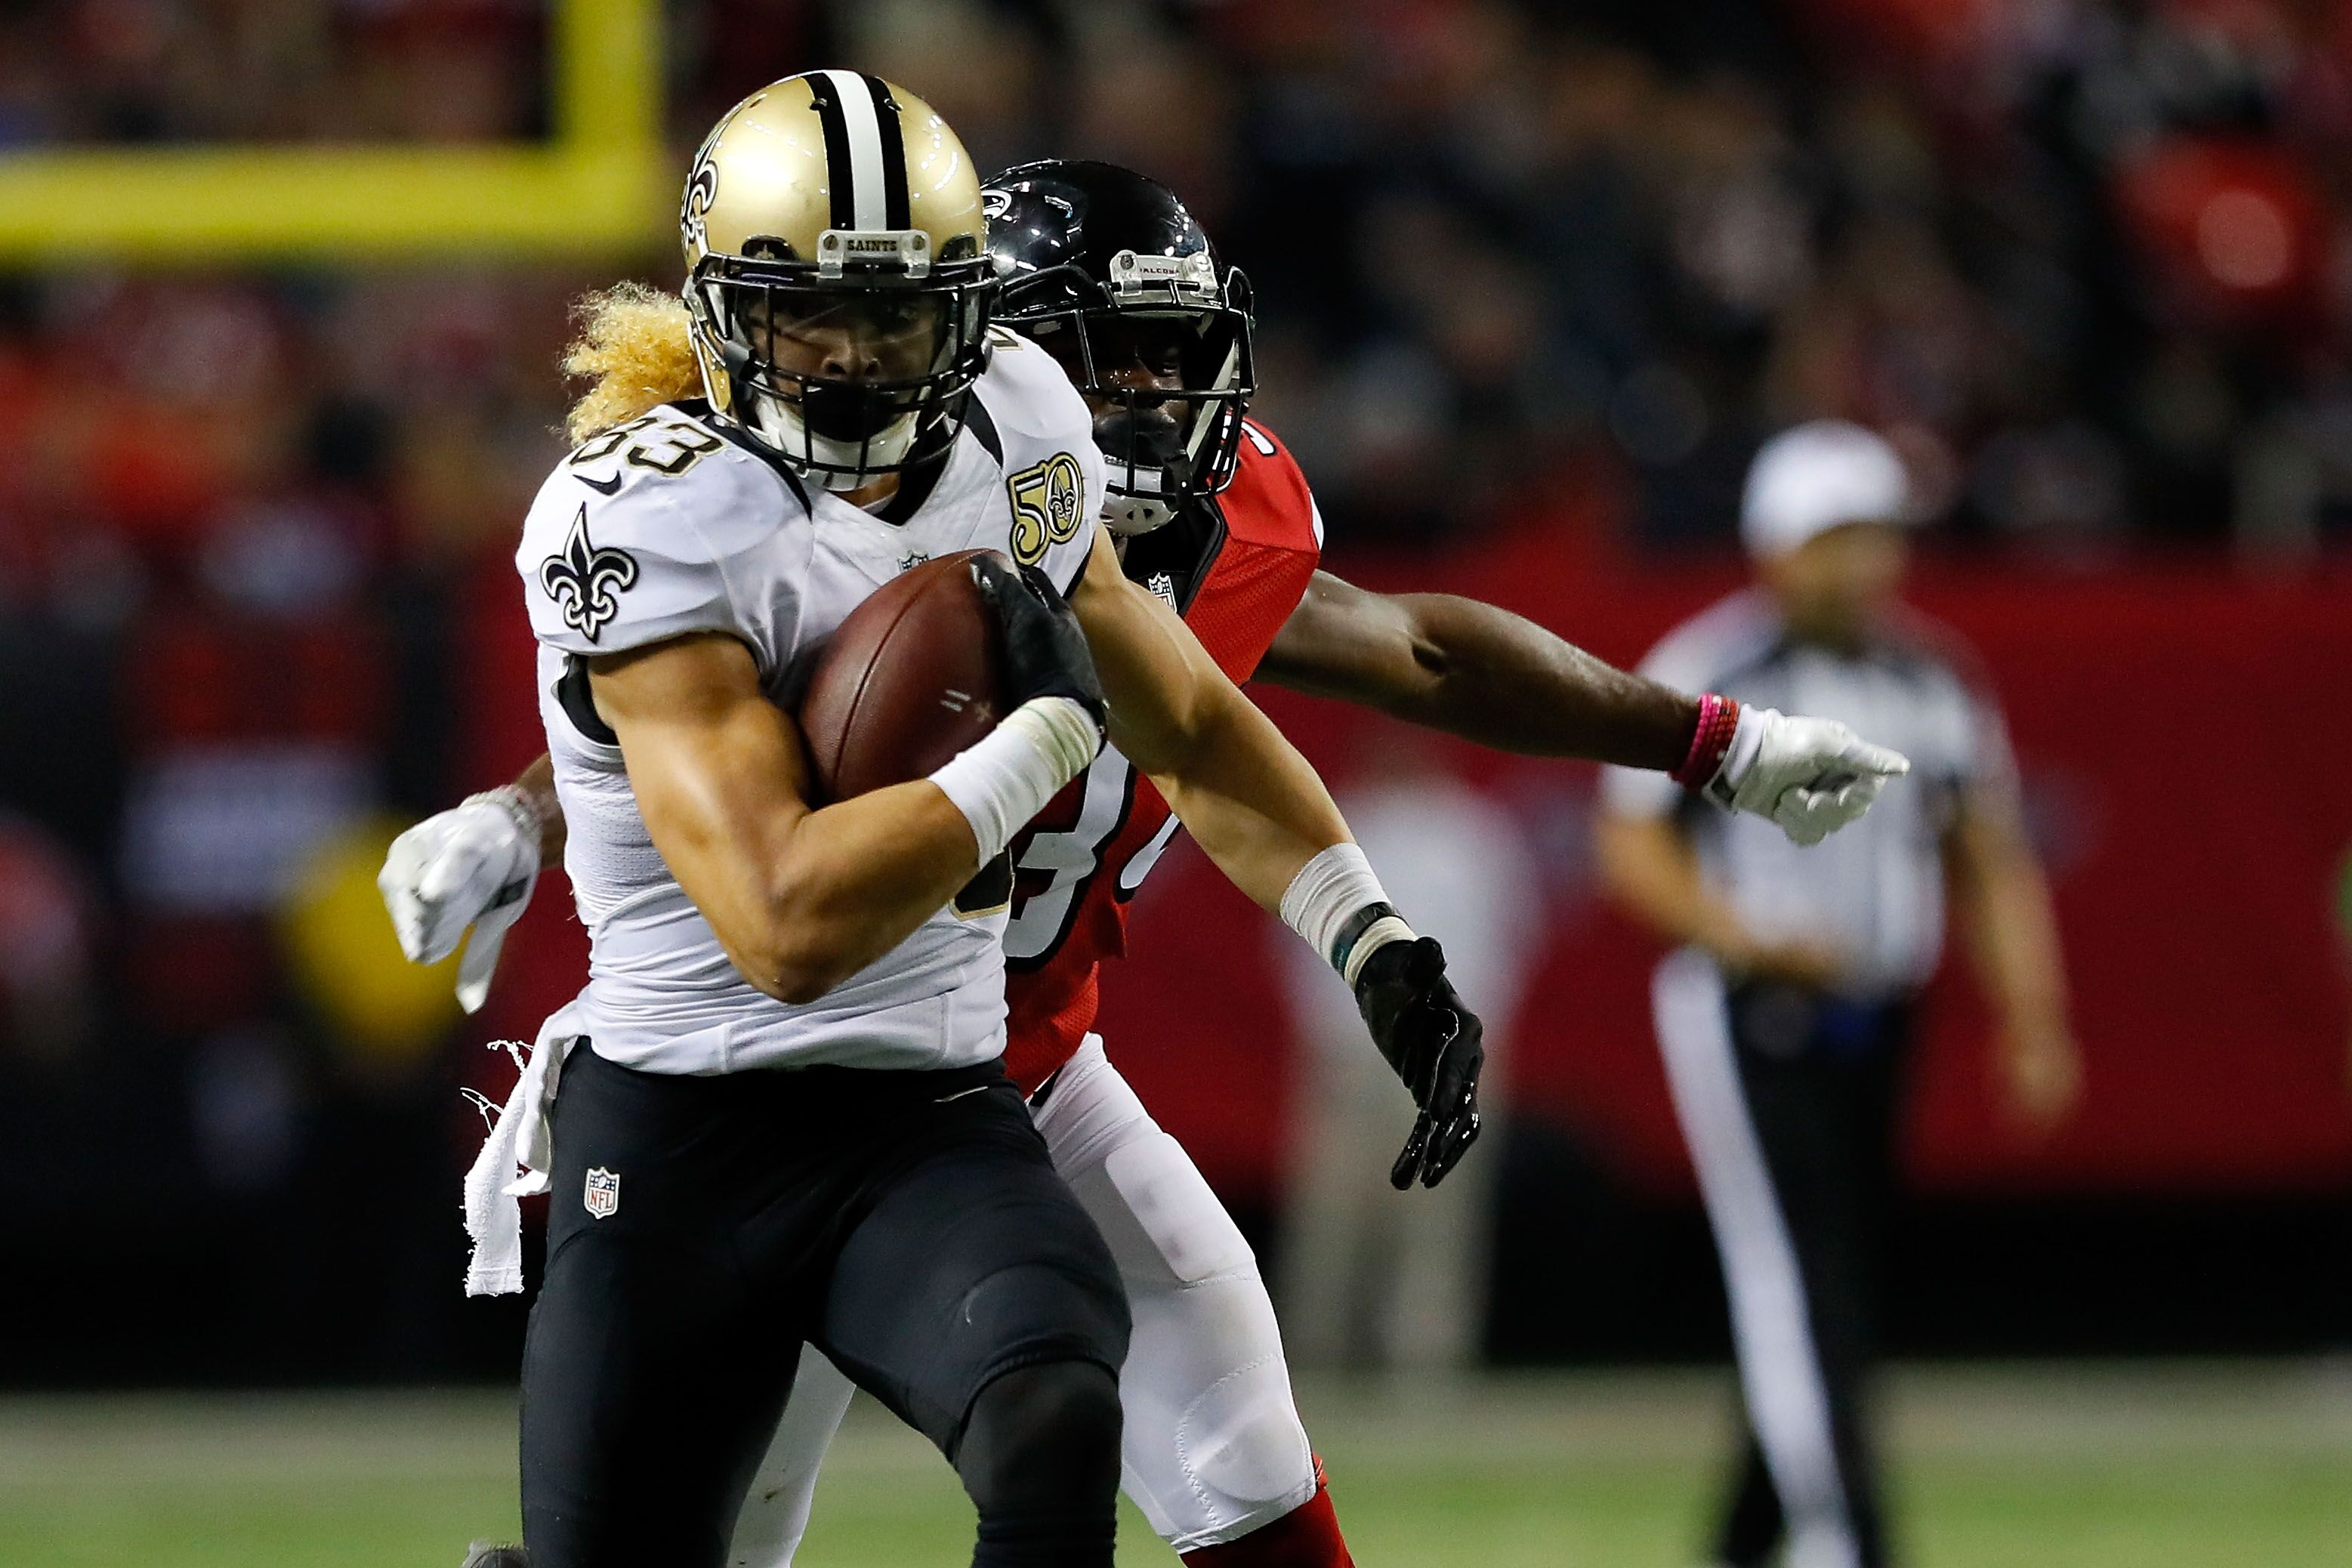 630775892-new-orleans-saints-v-atlanta-falcons.jpg